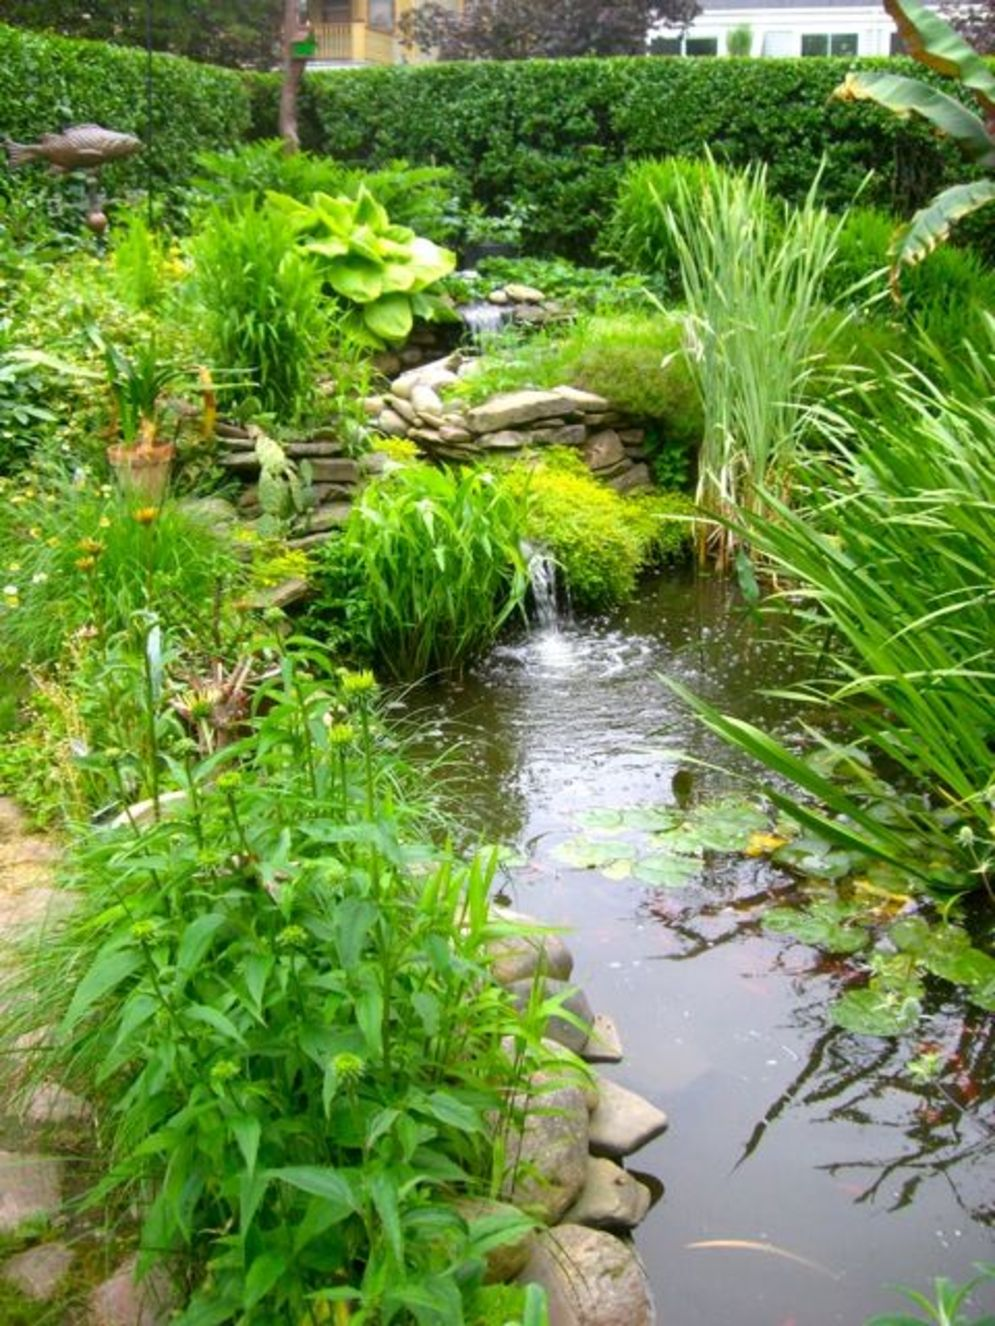 Water garden ideas for more natural backyard feeling with beautiful aquatic plants and ponds Image 27